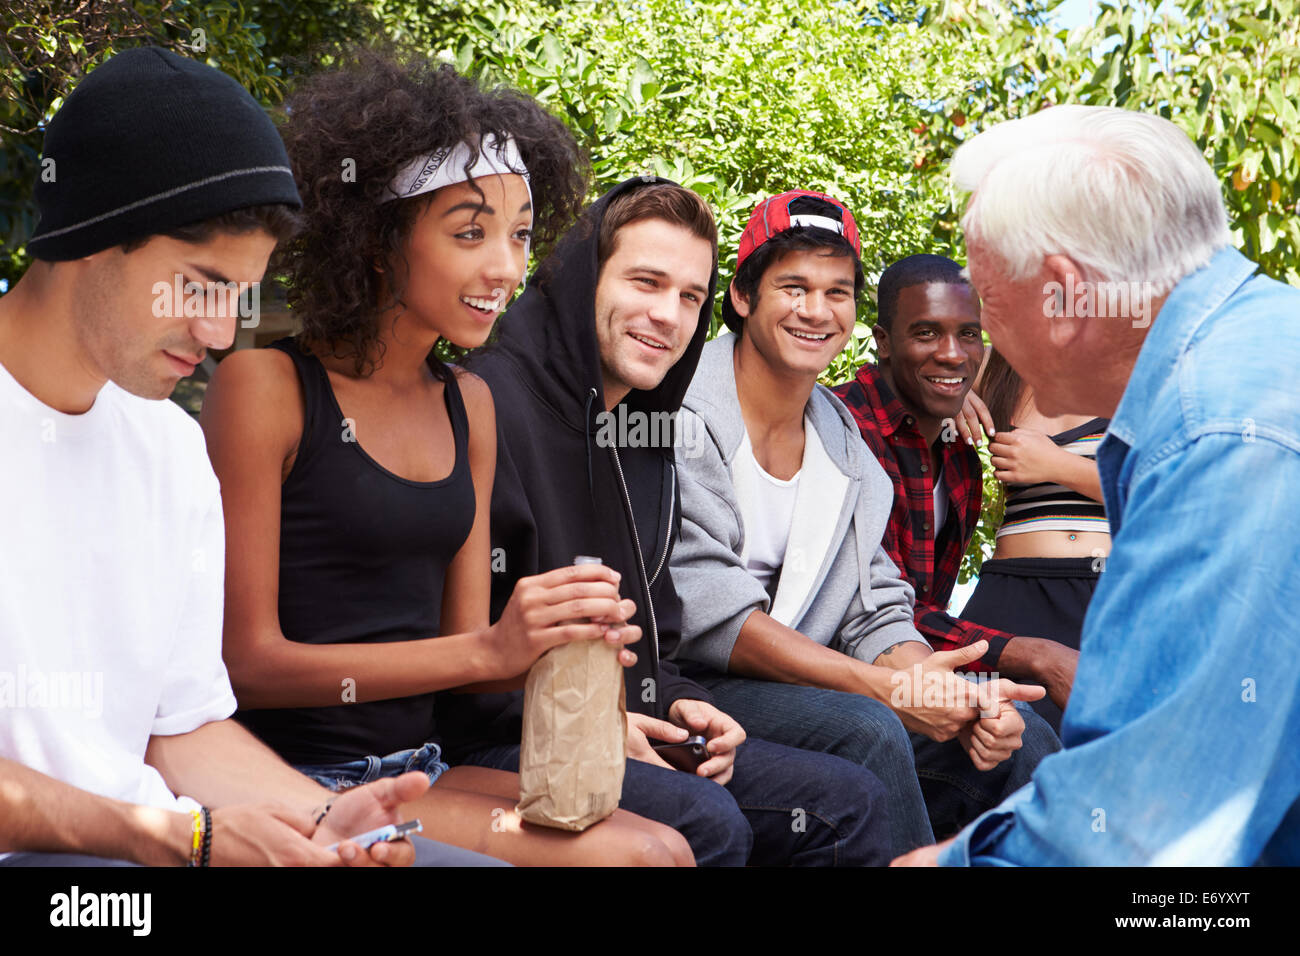 Senior Man Talking With Gang Of Young People - Stock Image